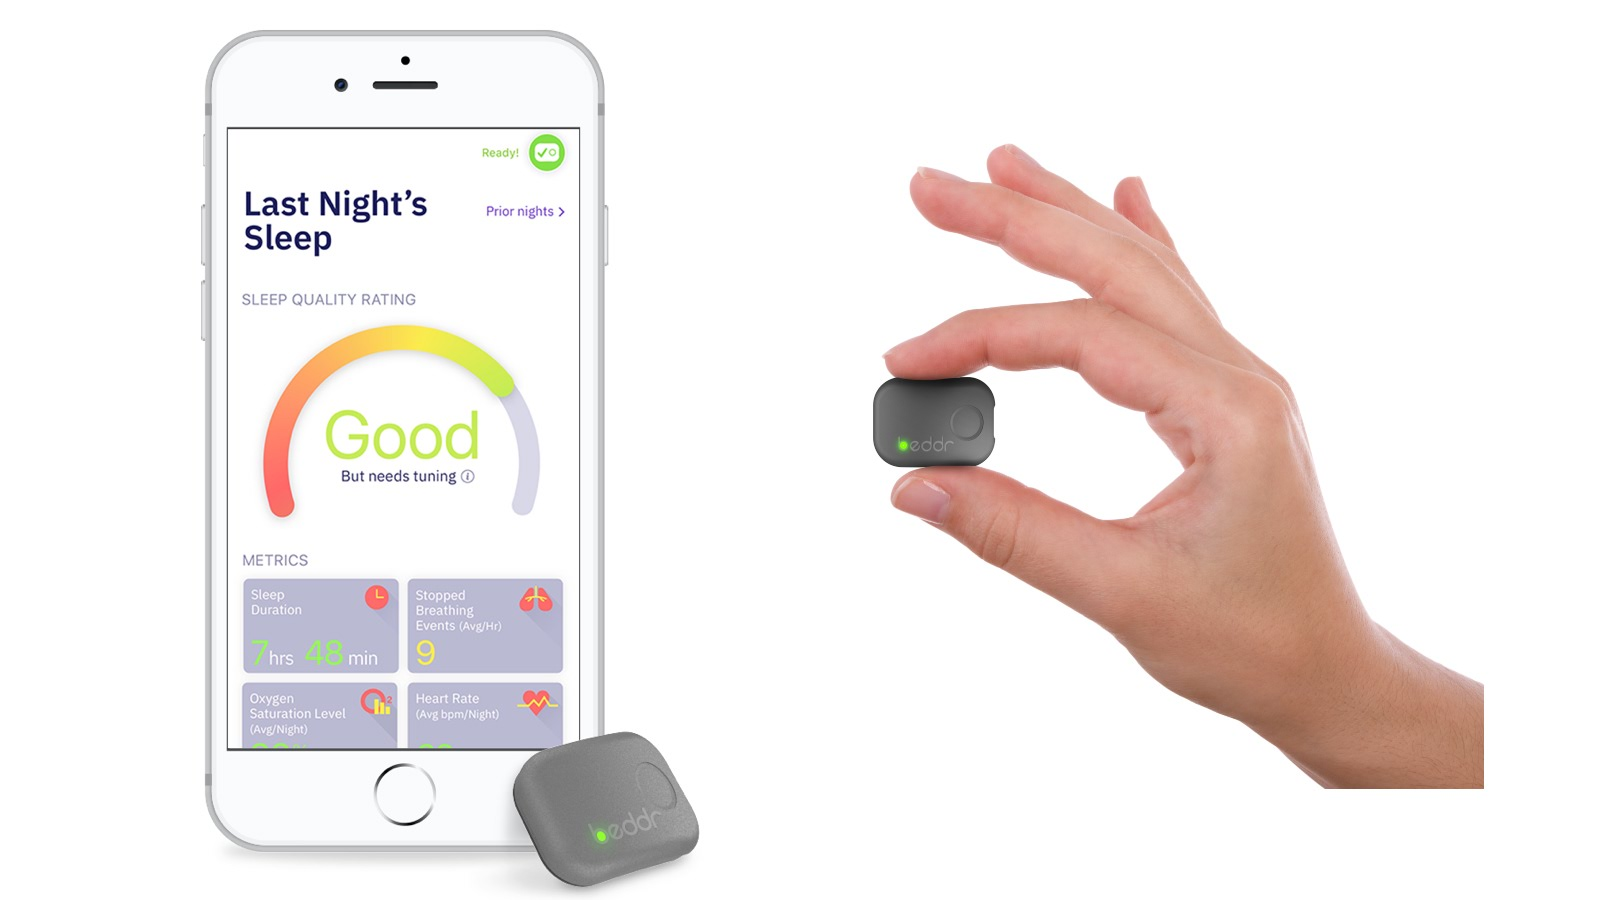 Beddr's SleepTuner is a powerful standalone alternative to Apple Watch sleep tracking